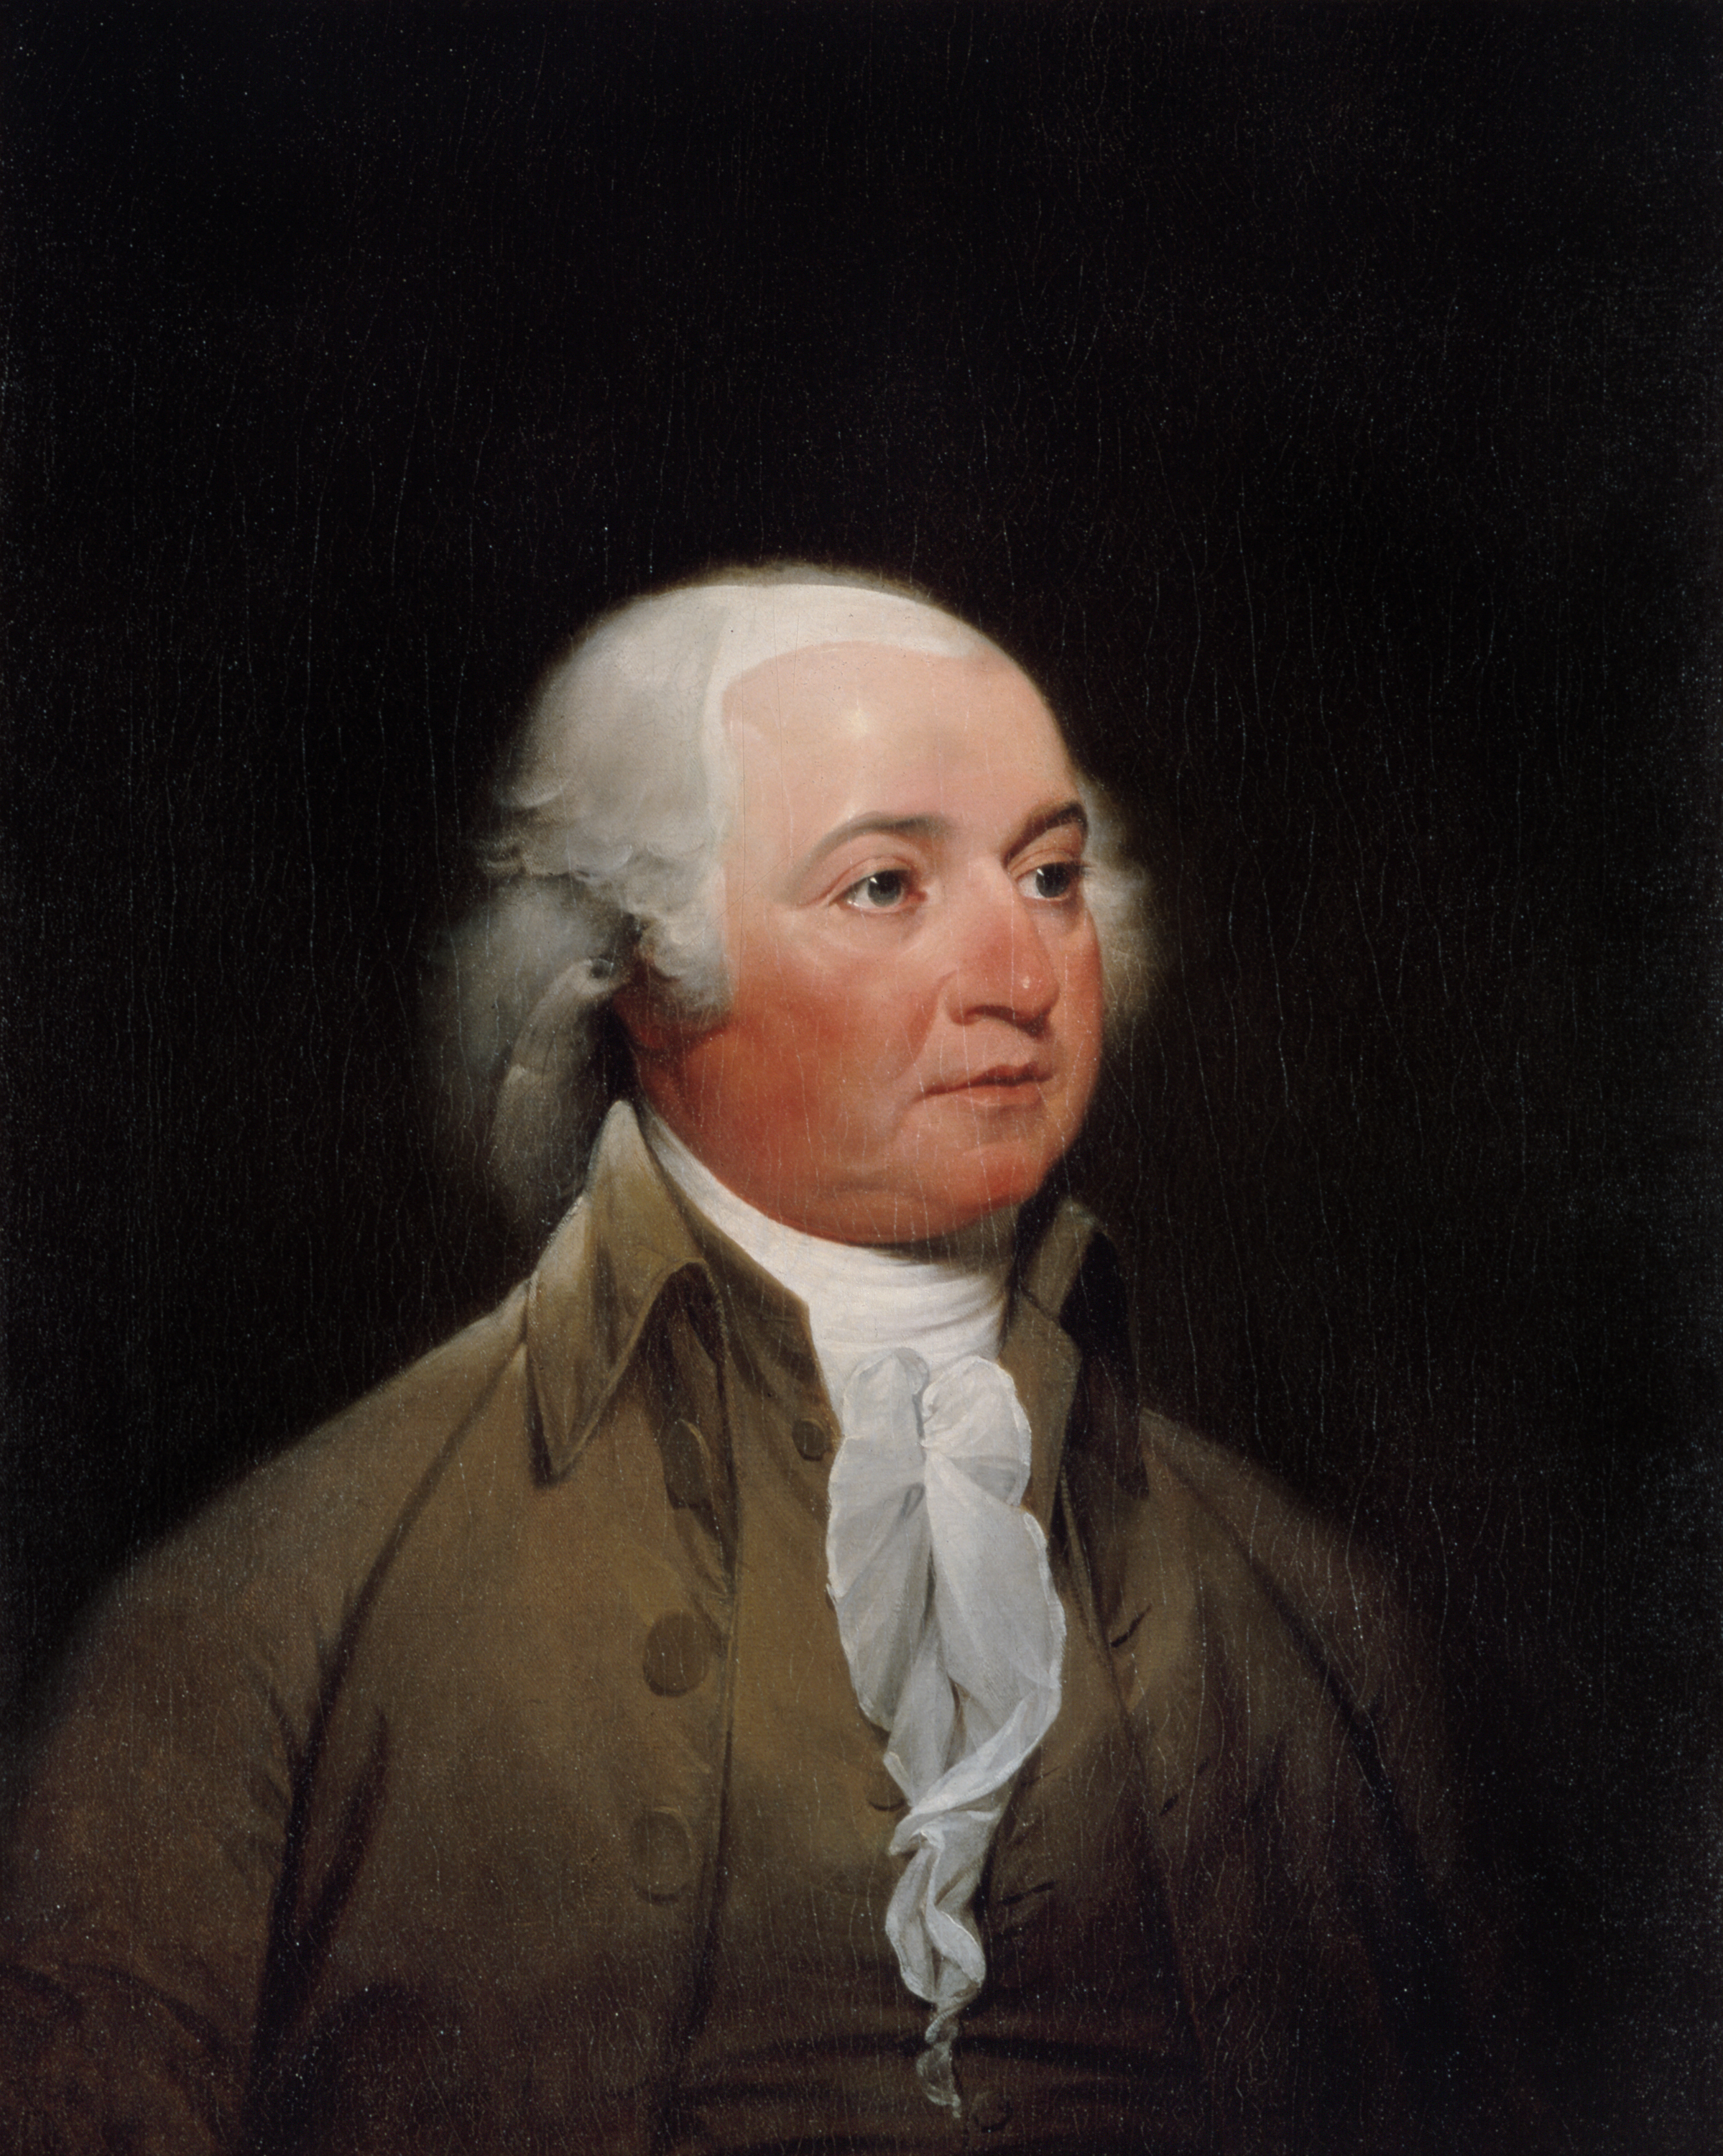 Portrait of John Adams  by John Trumbull, c. 1792-93